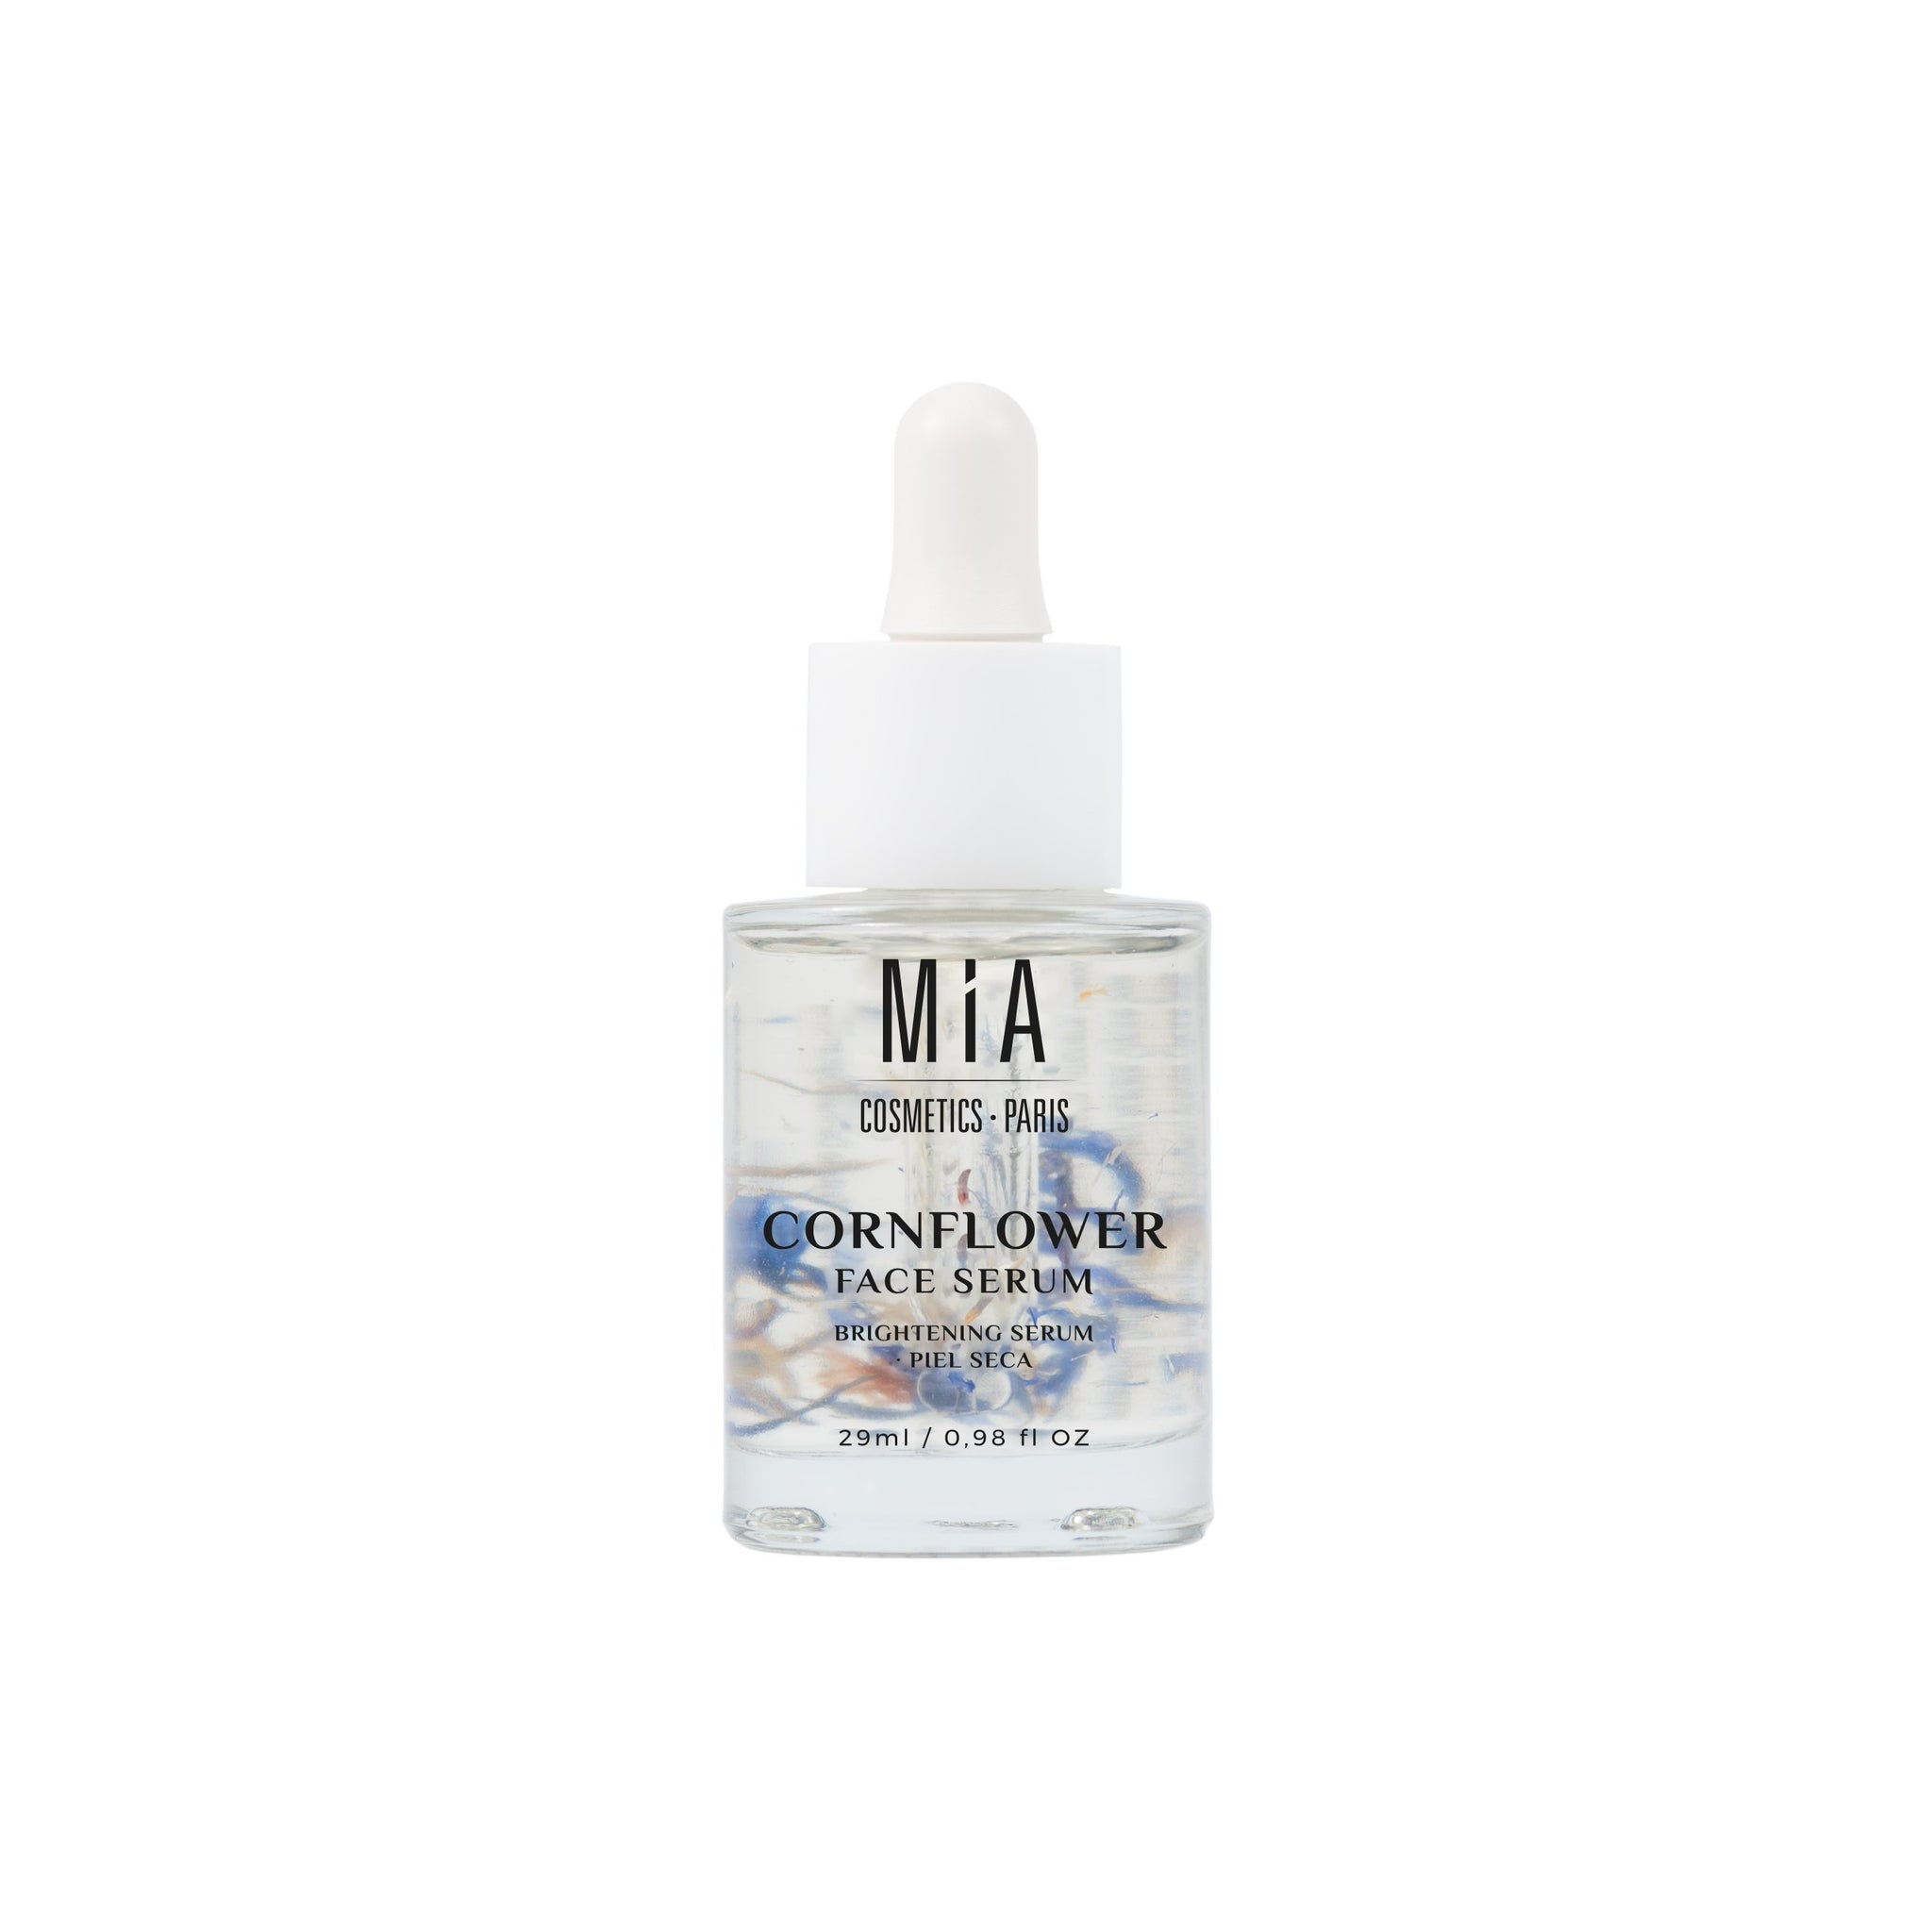 Cornflower Face Serum